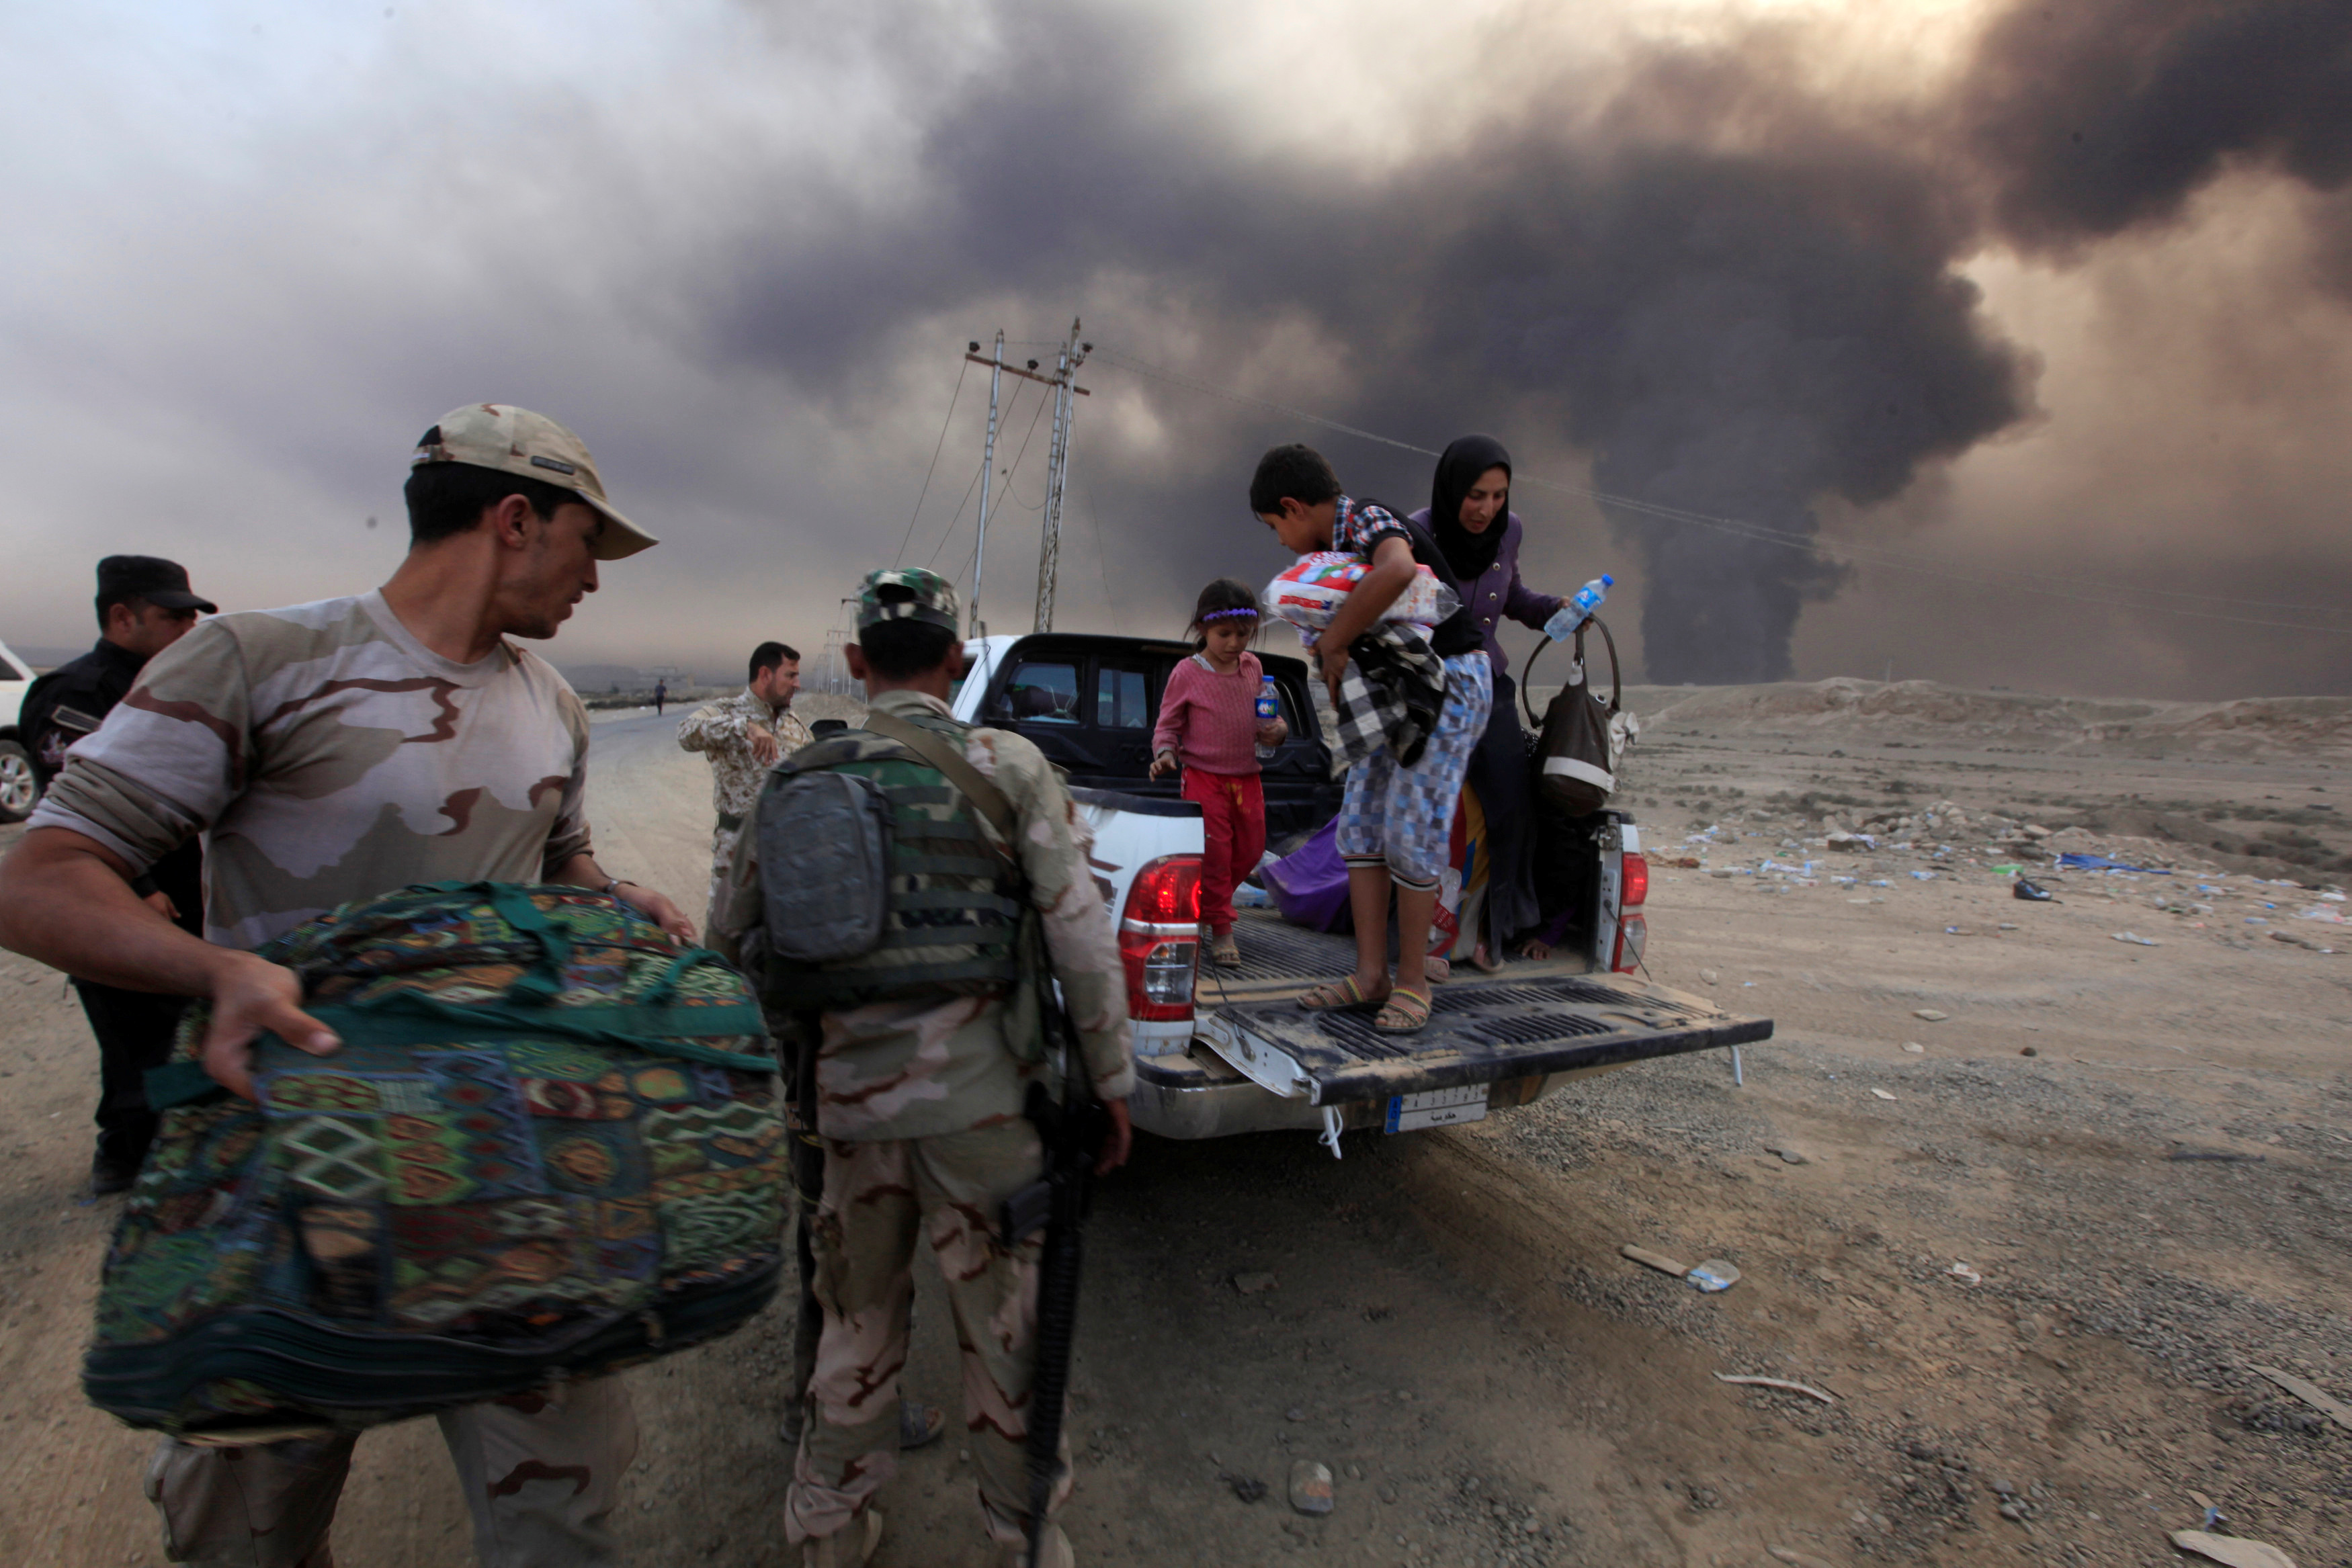 Displaced Iraqis arrive in Qayyarah, south of Mosul, on Oct. 19. About 3.3 million people already are displaced within Iraq, the United Nations said. Photo by Alaa Al-Marjani/Reuters